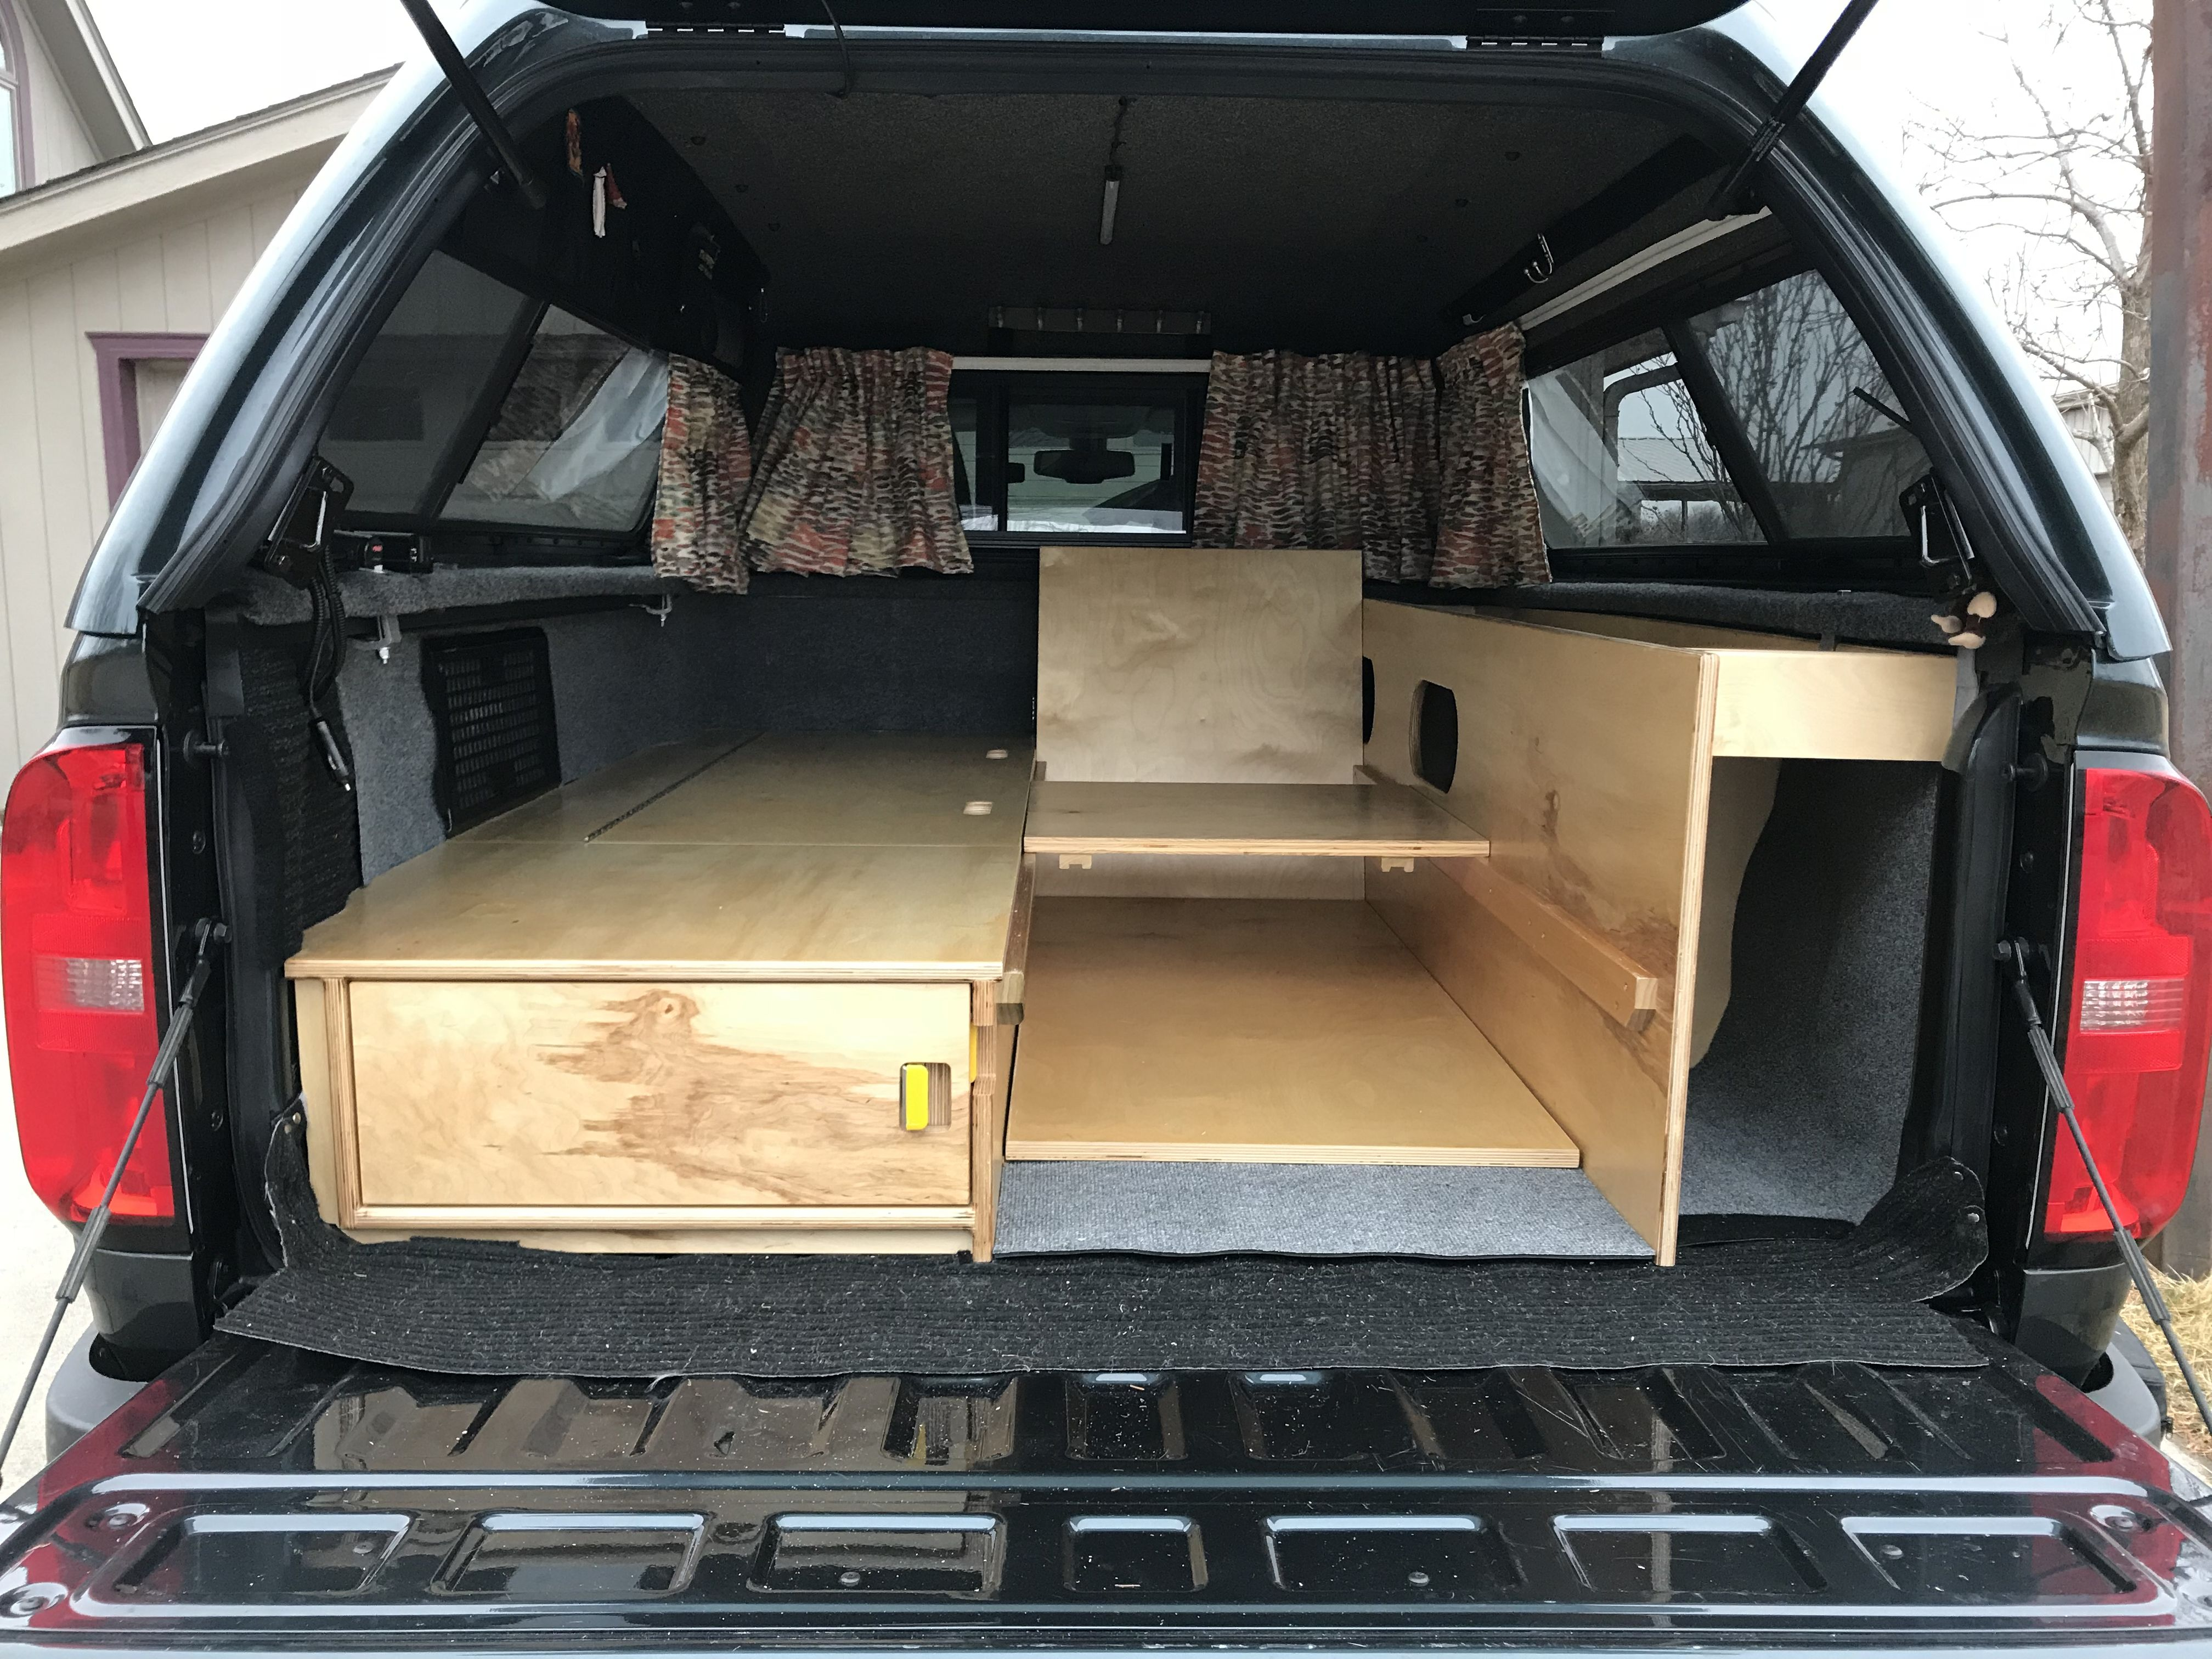 Truck conversion with side bed and chair. Truck bed